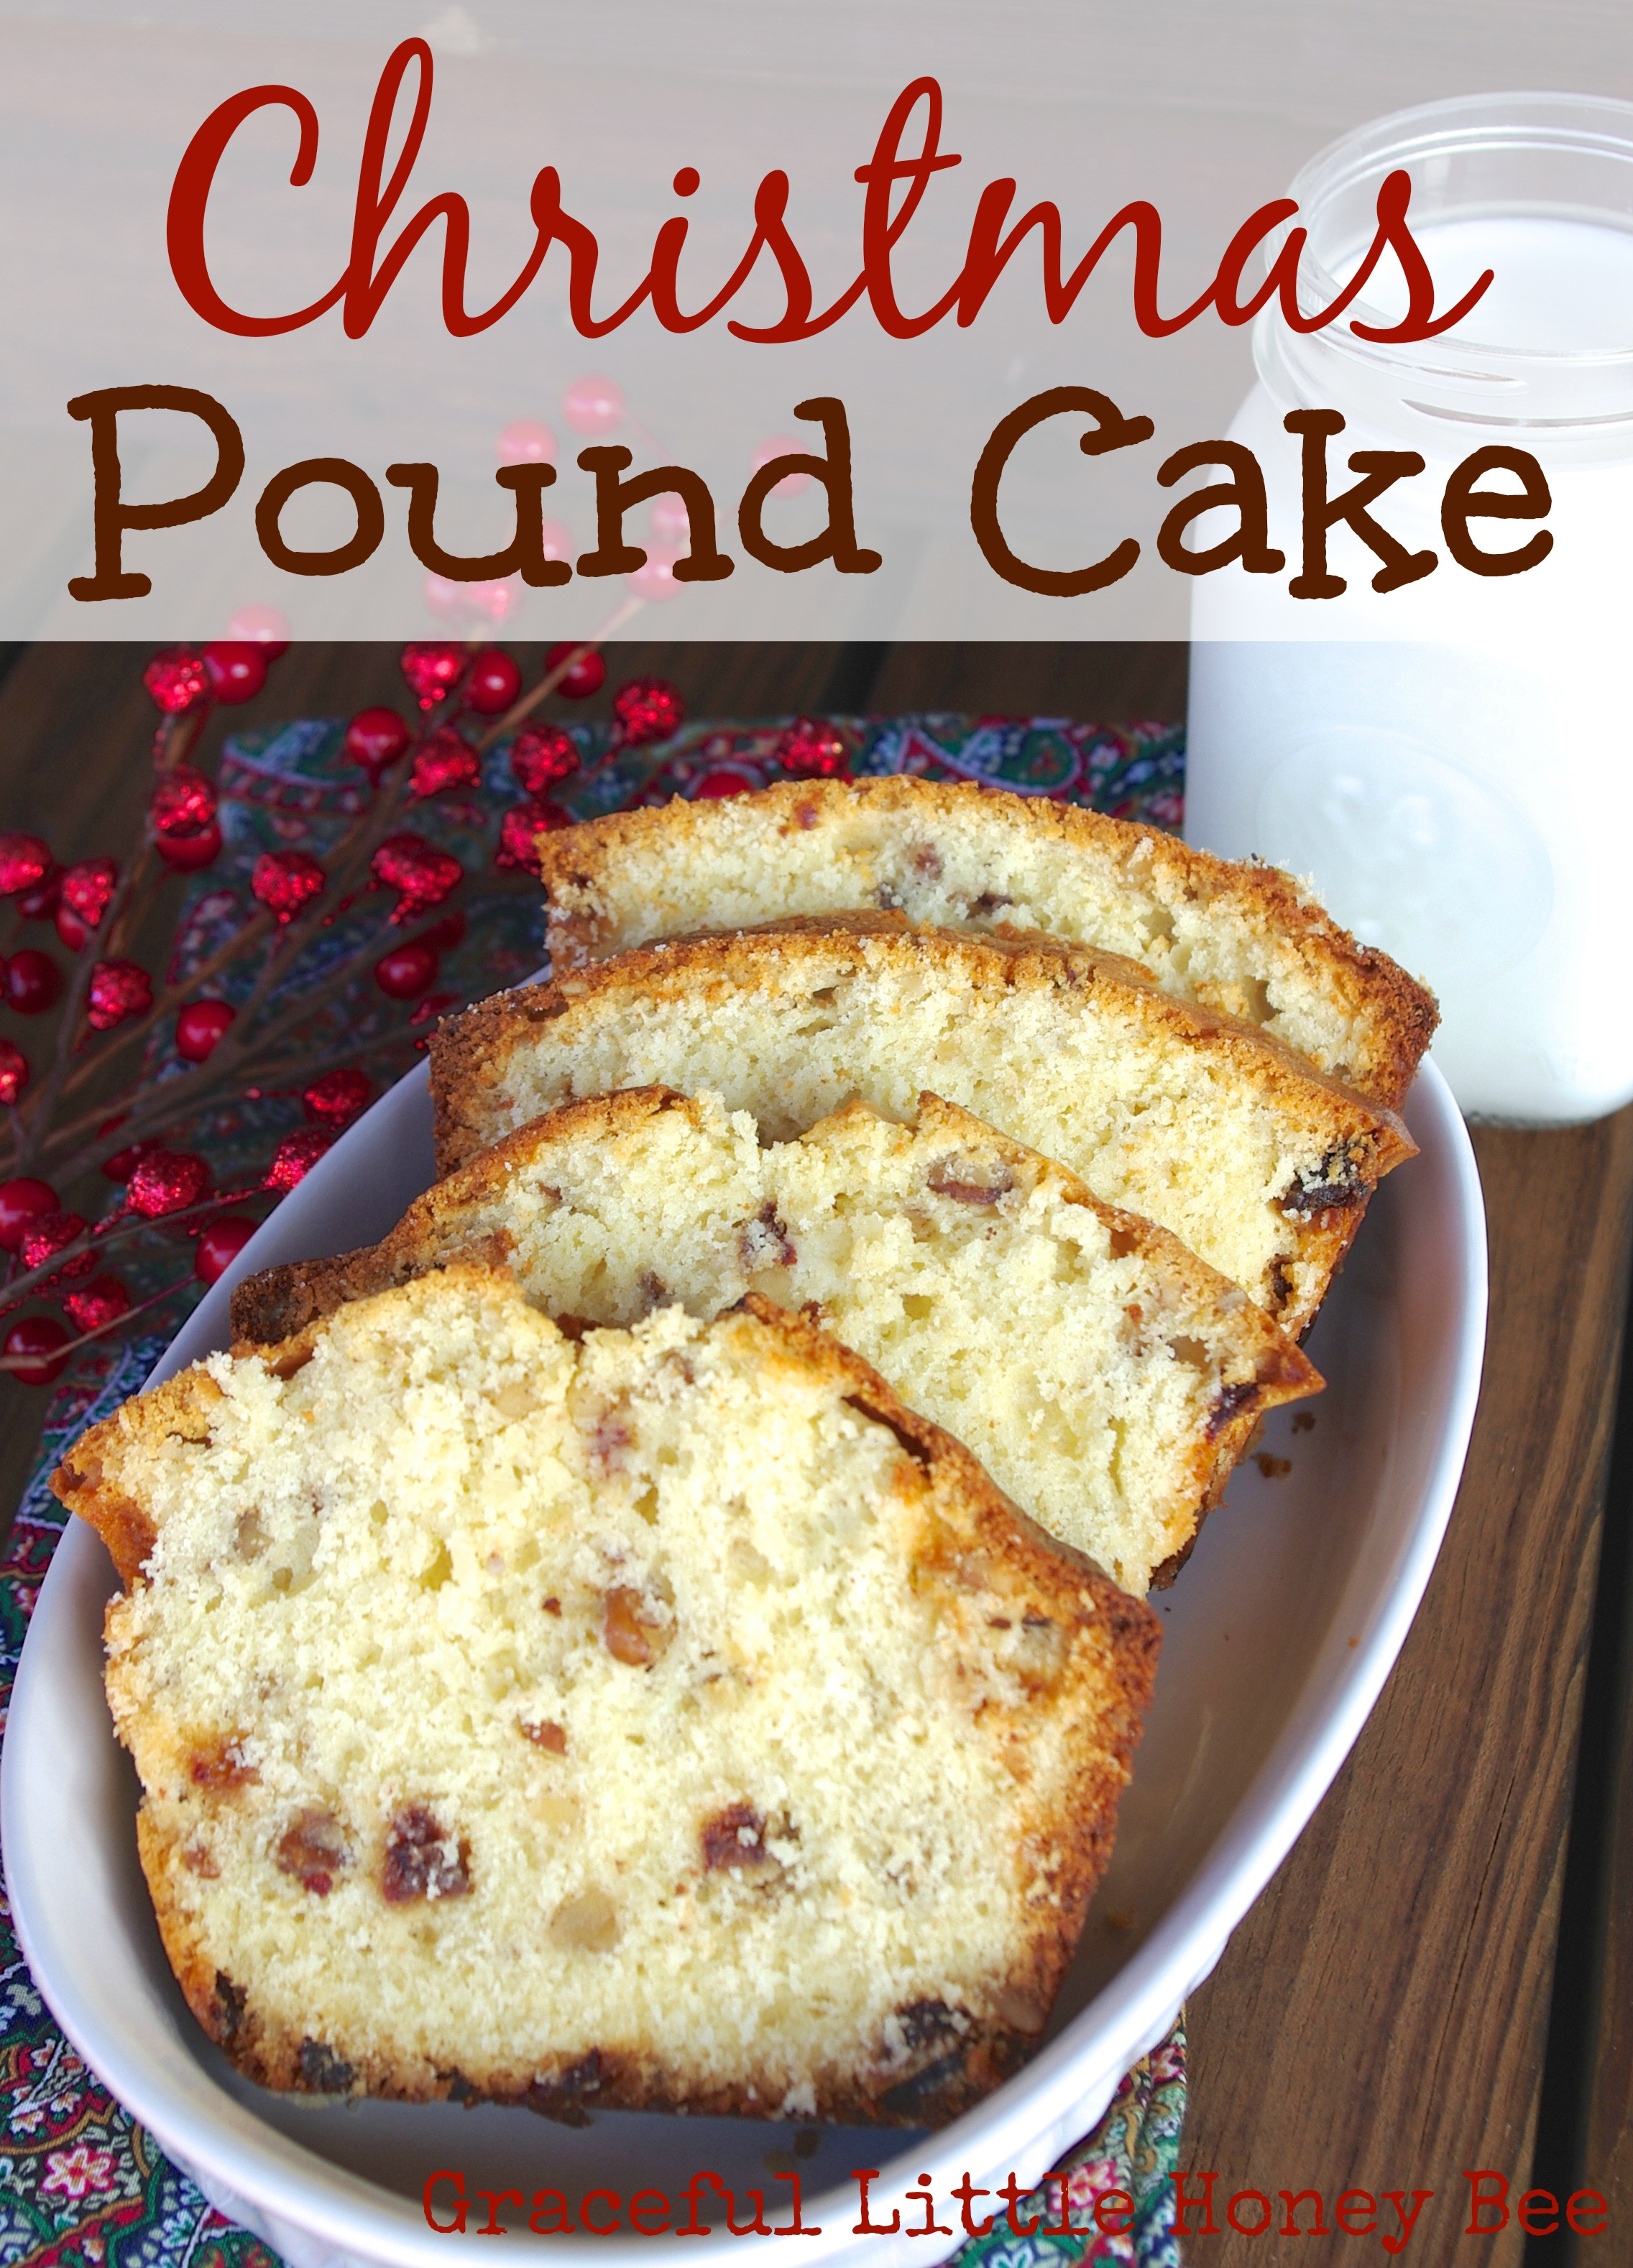 Christmas Pound Cake Recipe  Christmas Pound Cake Graceful Little Honey Bee